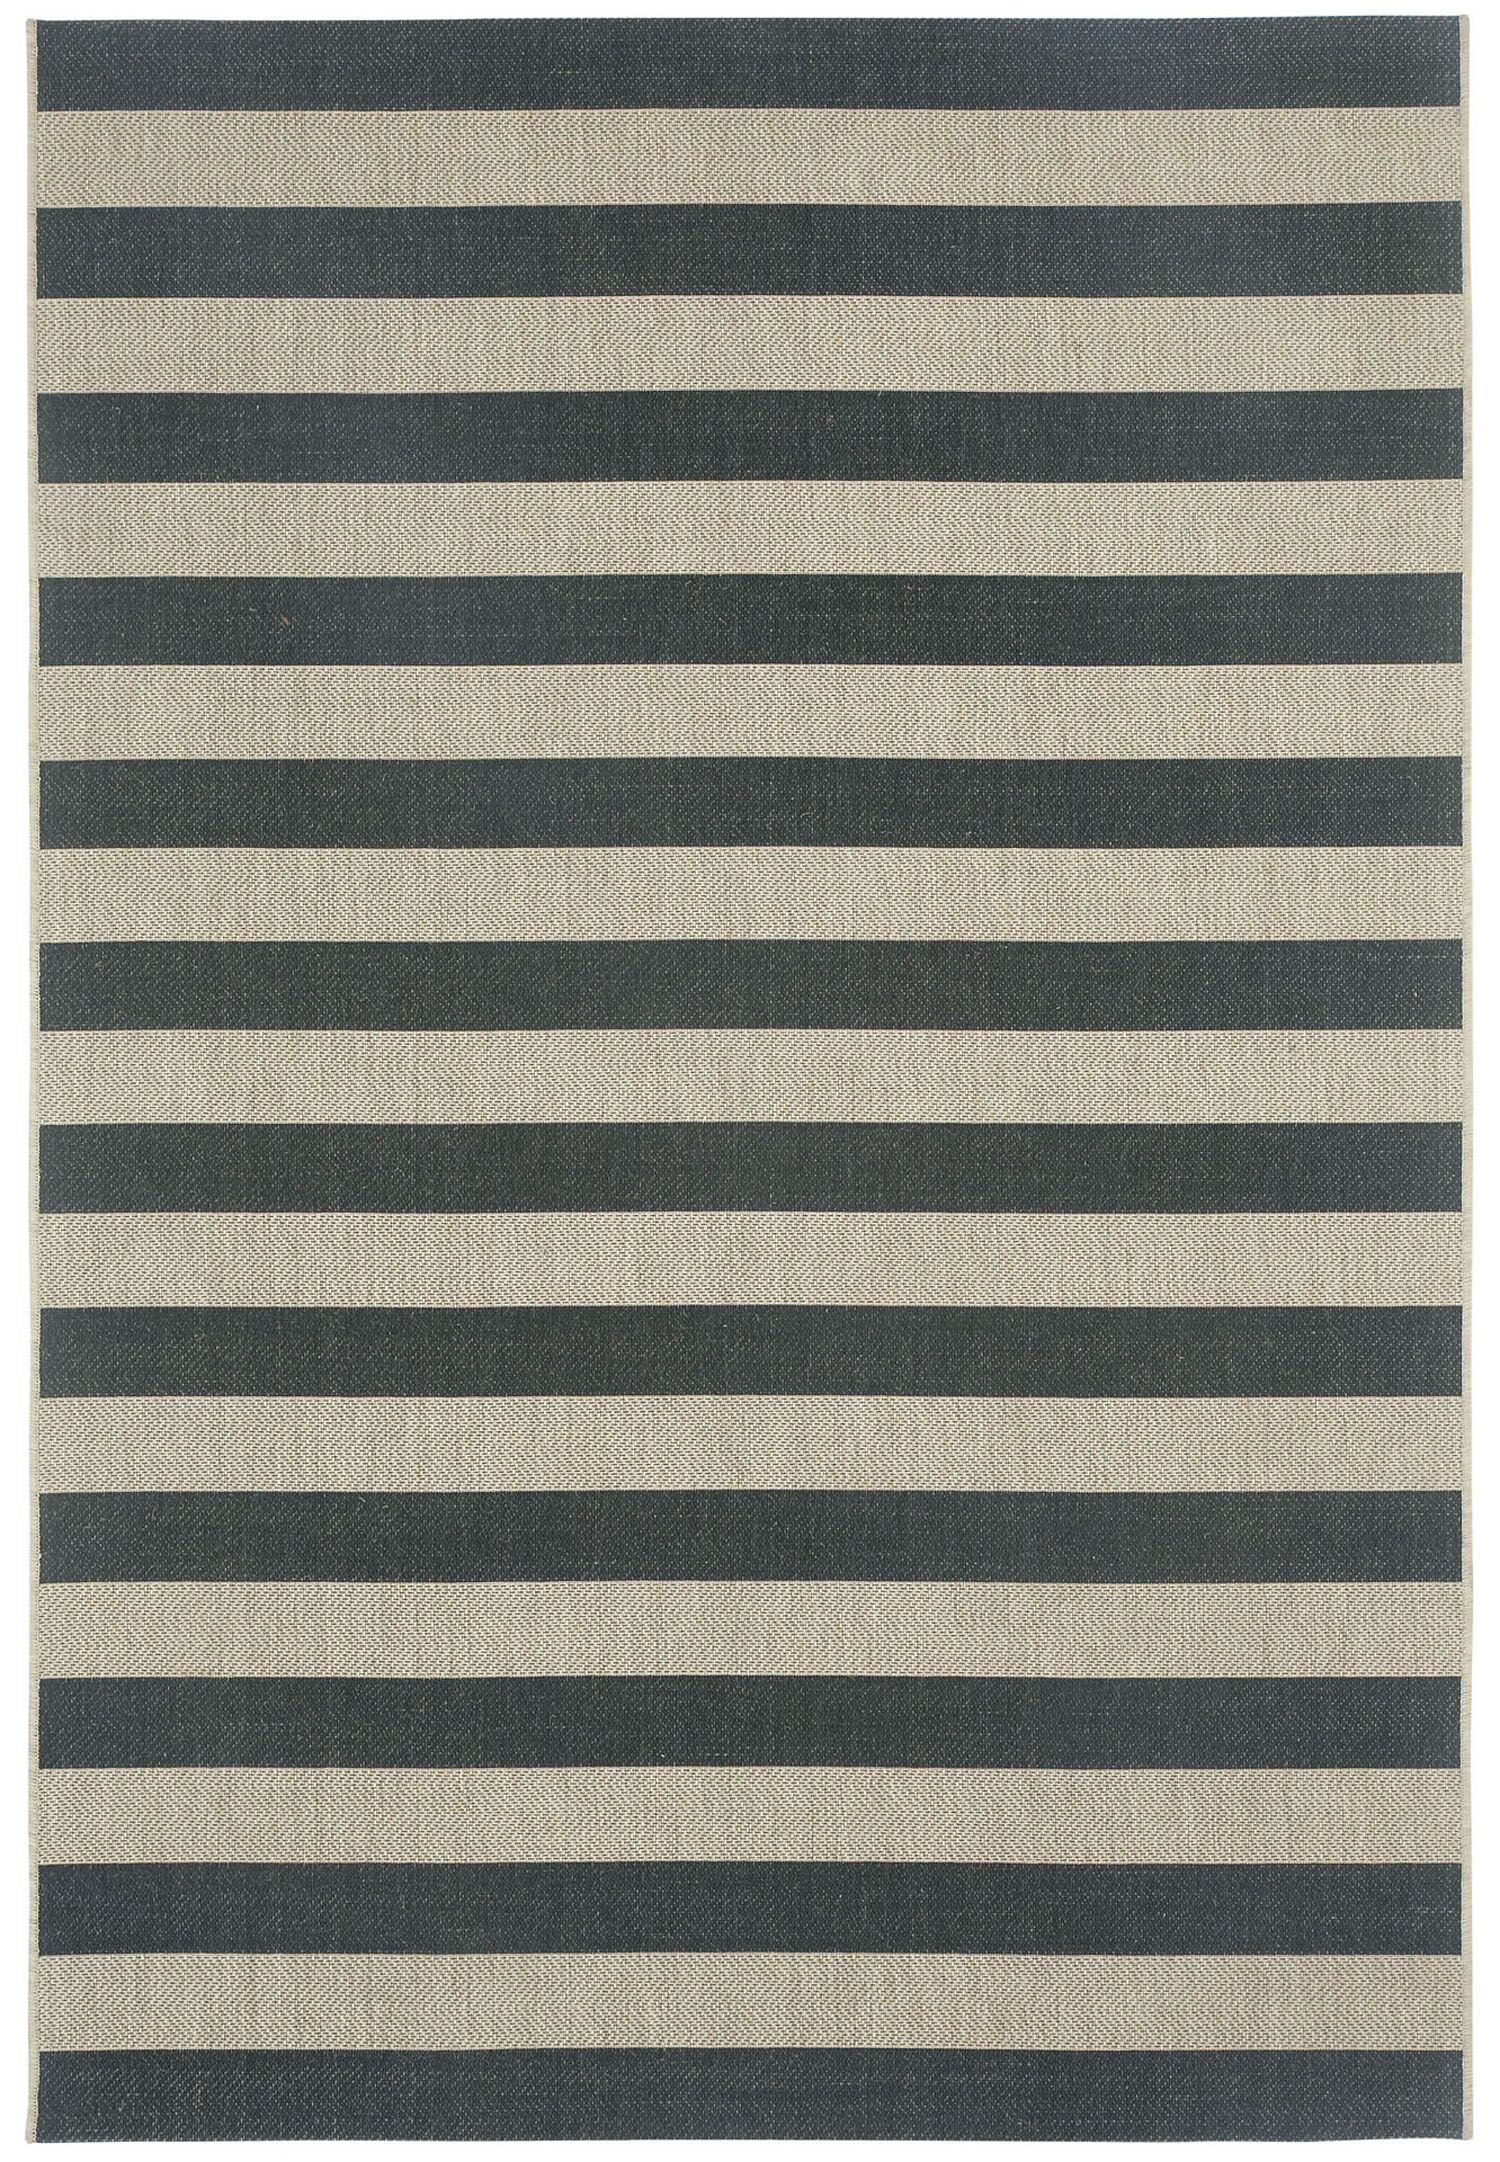 Palm Cove Cinders Black/Beige Striped Outdoor Area Rug Rug Size: Rectangle 3'11